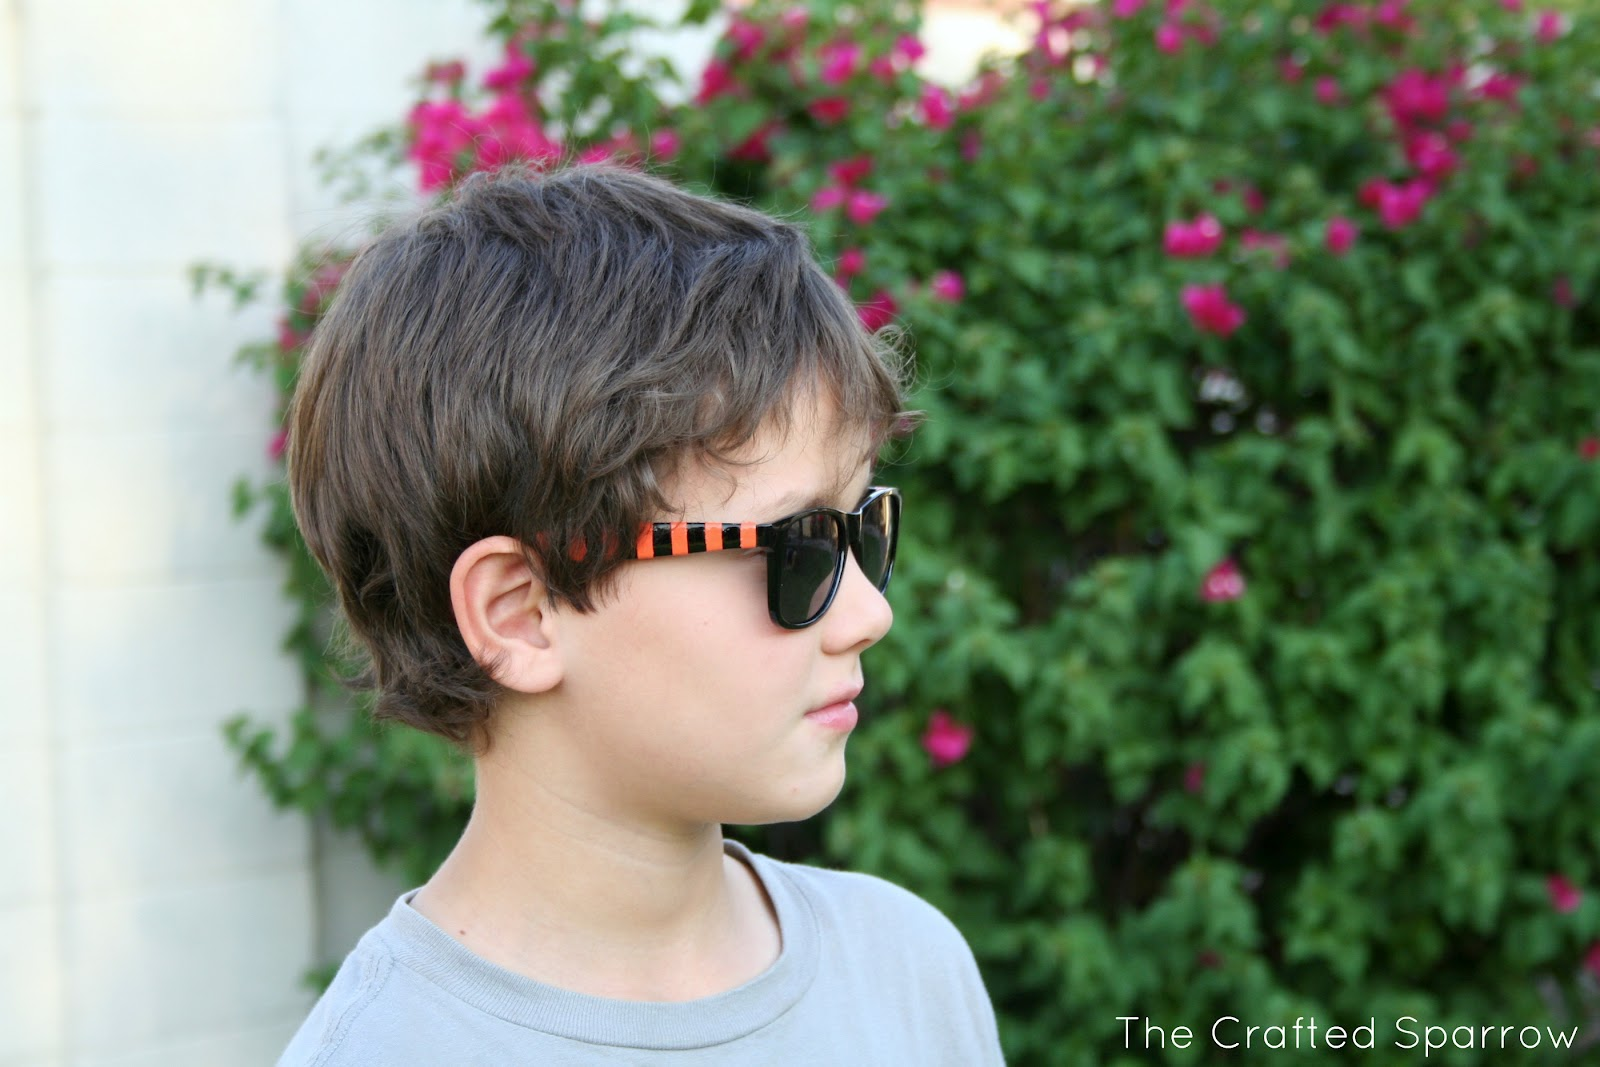 DIY Painted Sunglasses - The Crafted Sparrow